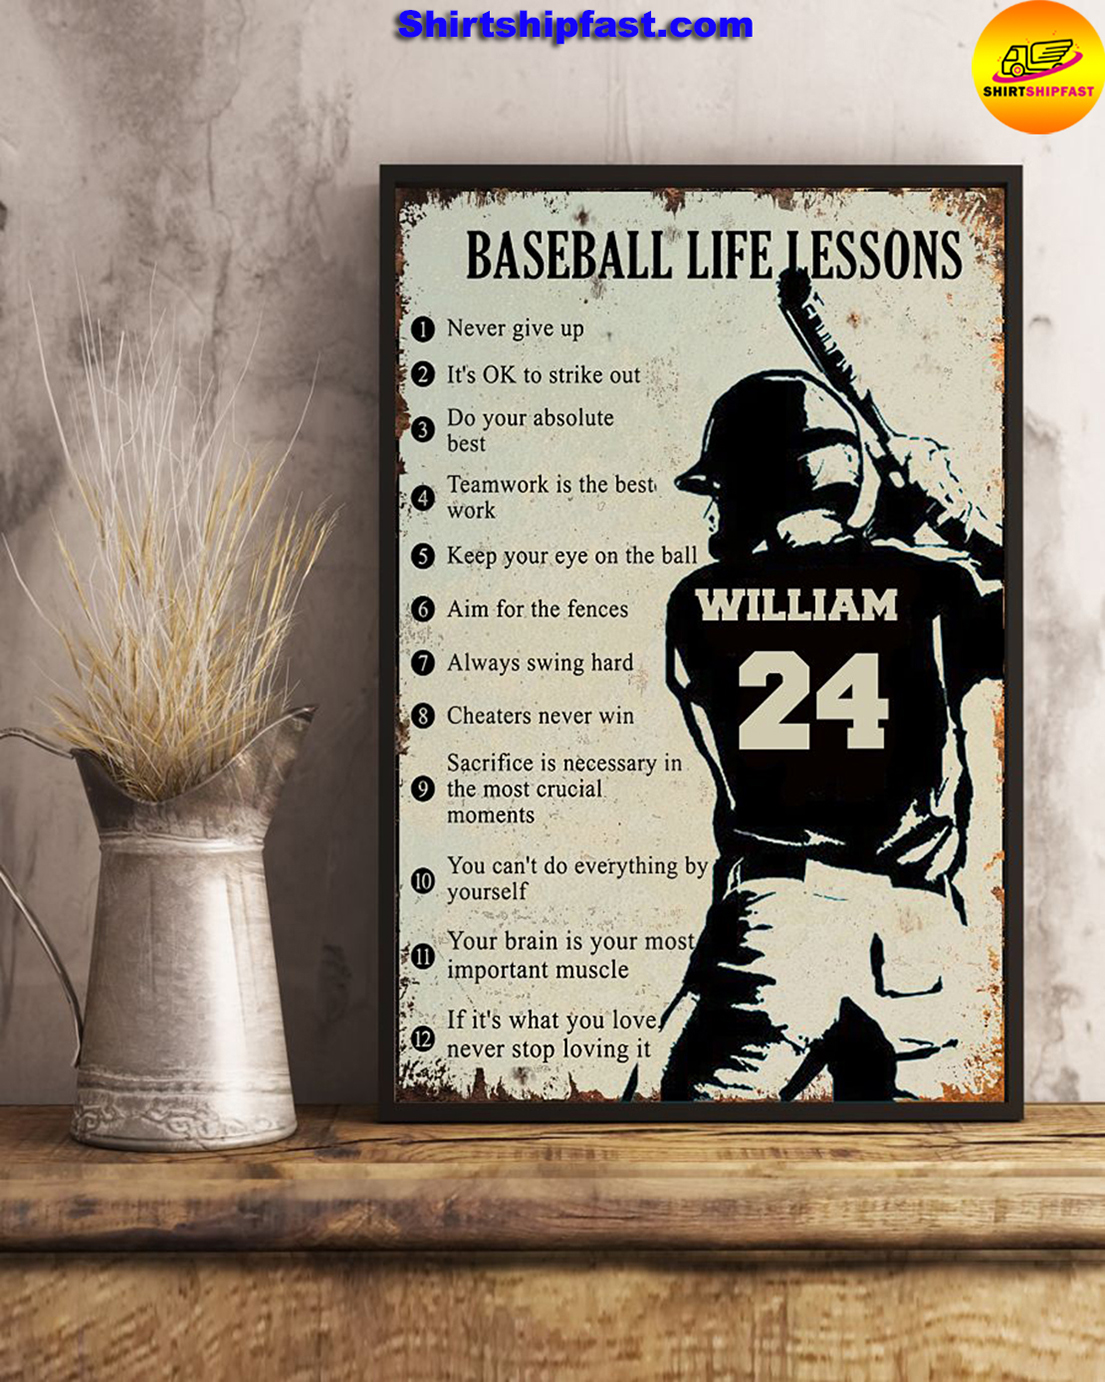 Personalize Baseball life lessons poster - Picture 1